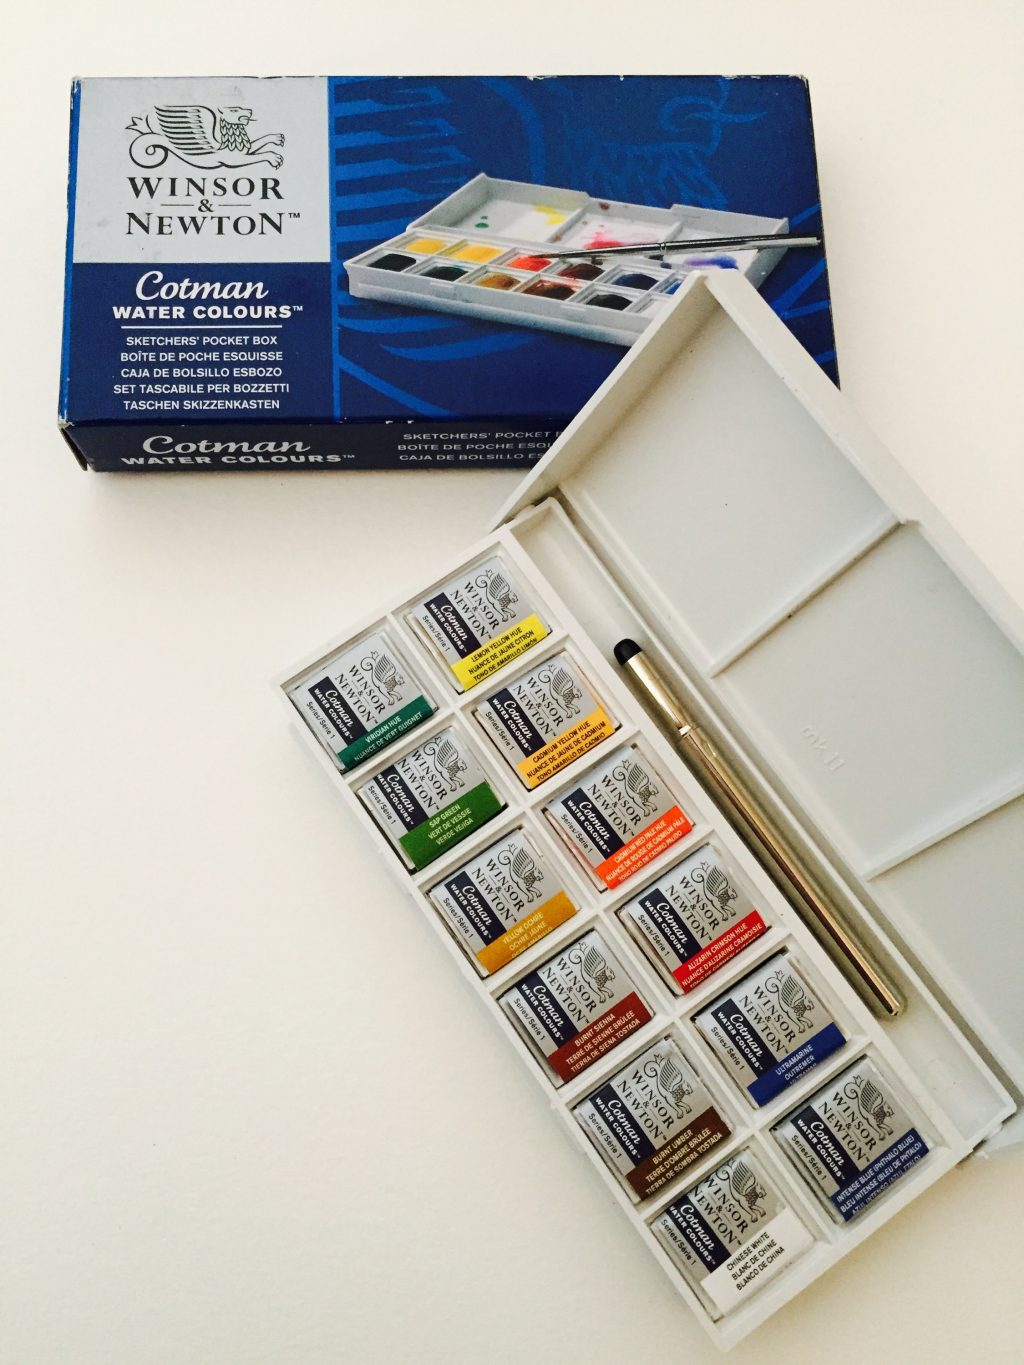 Winsor & Newton Cotman Watercolor Box